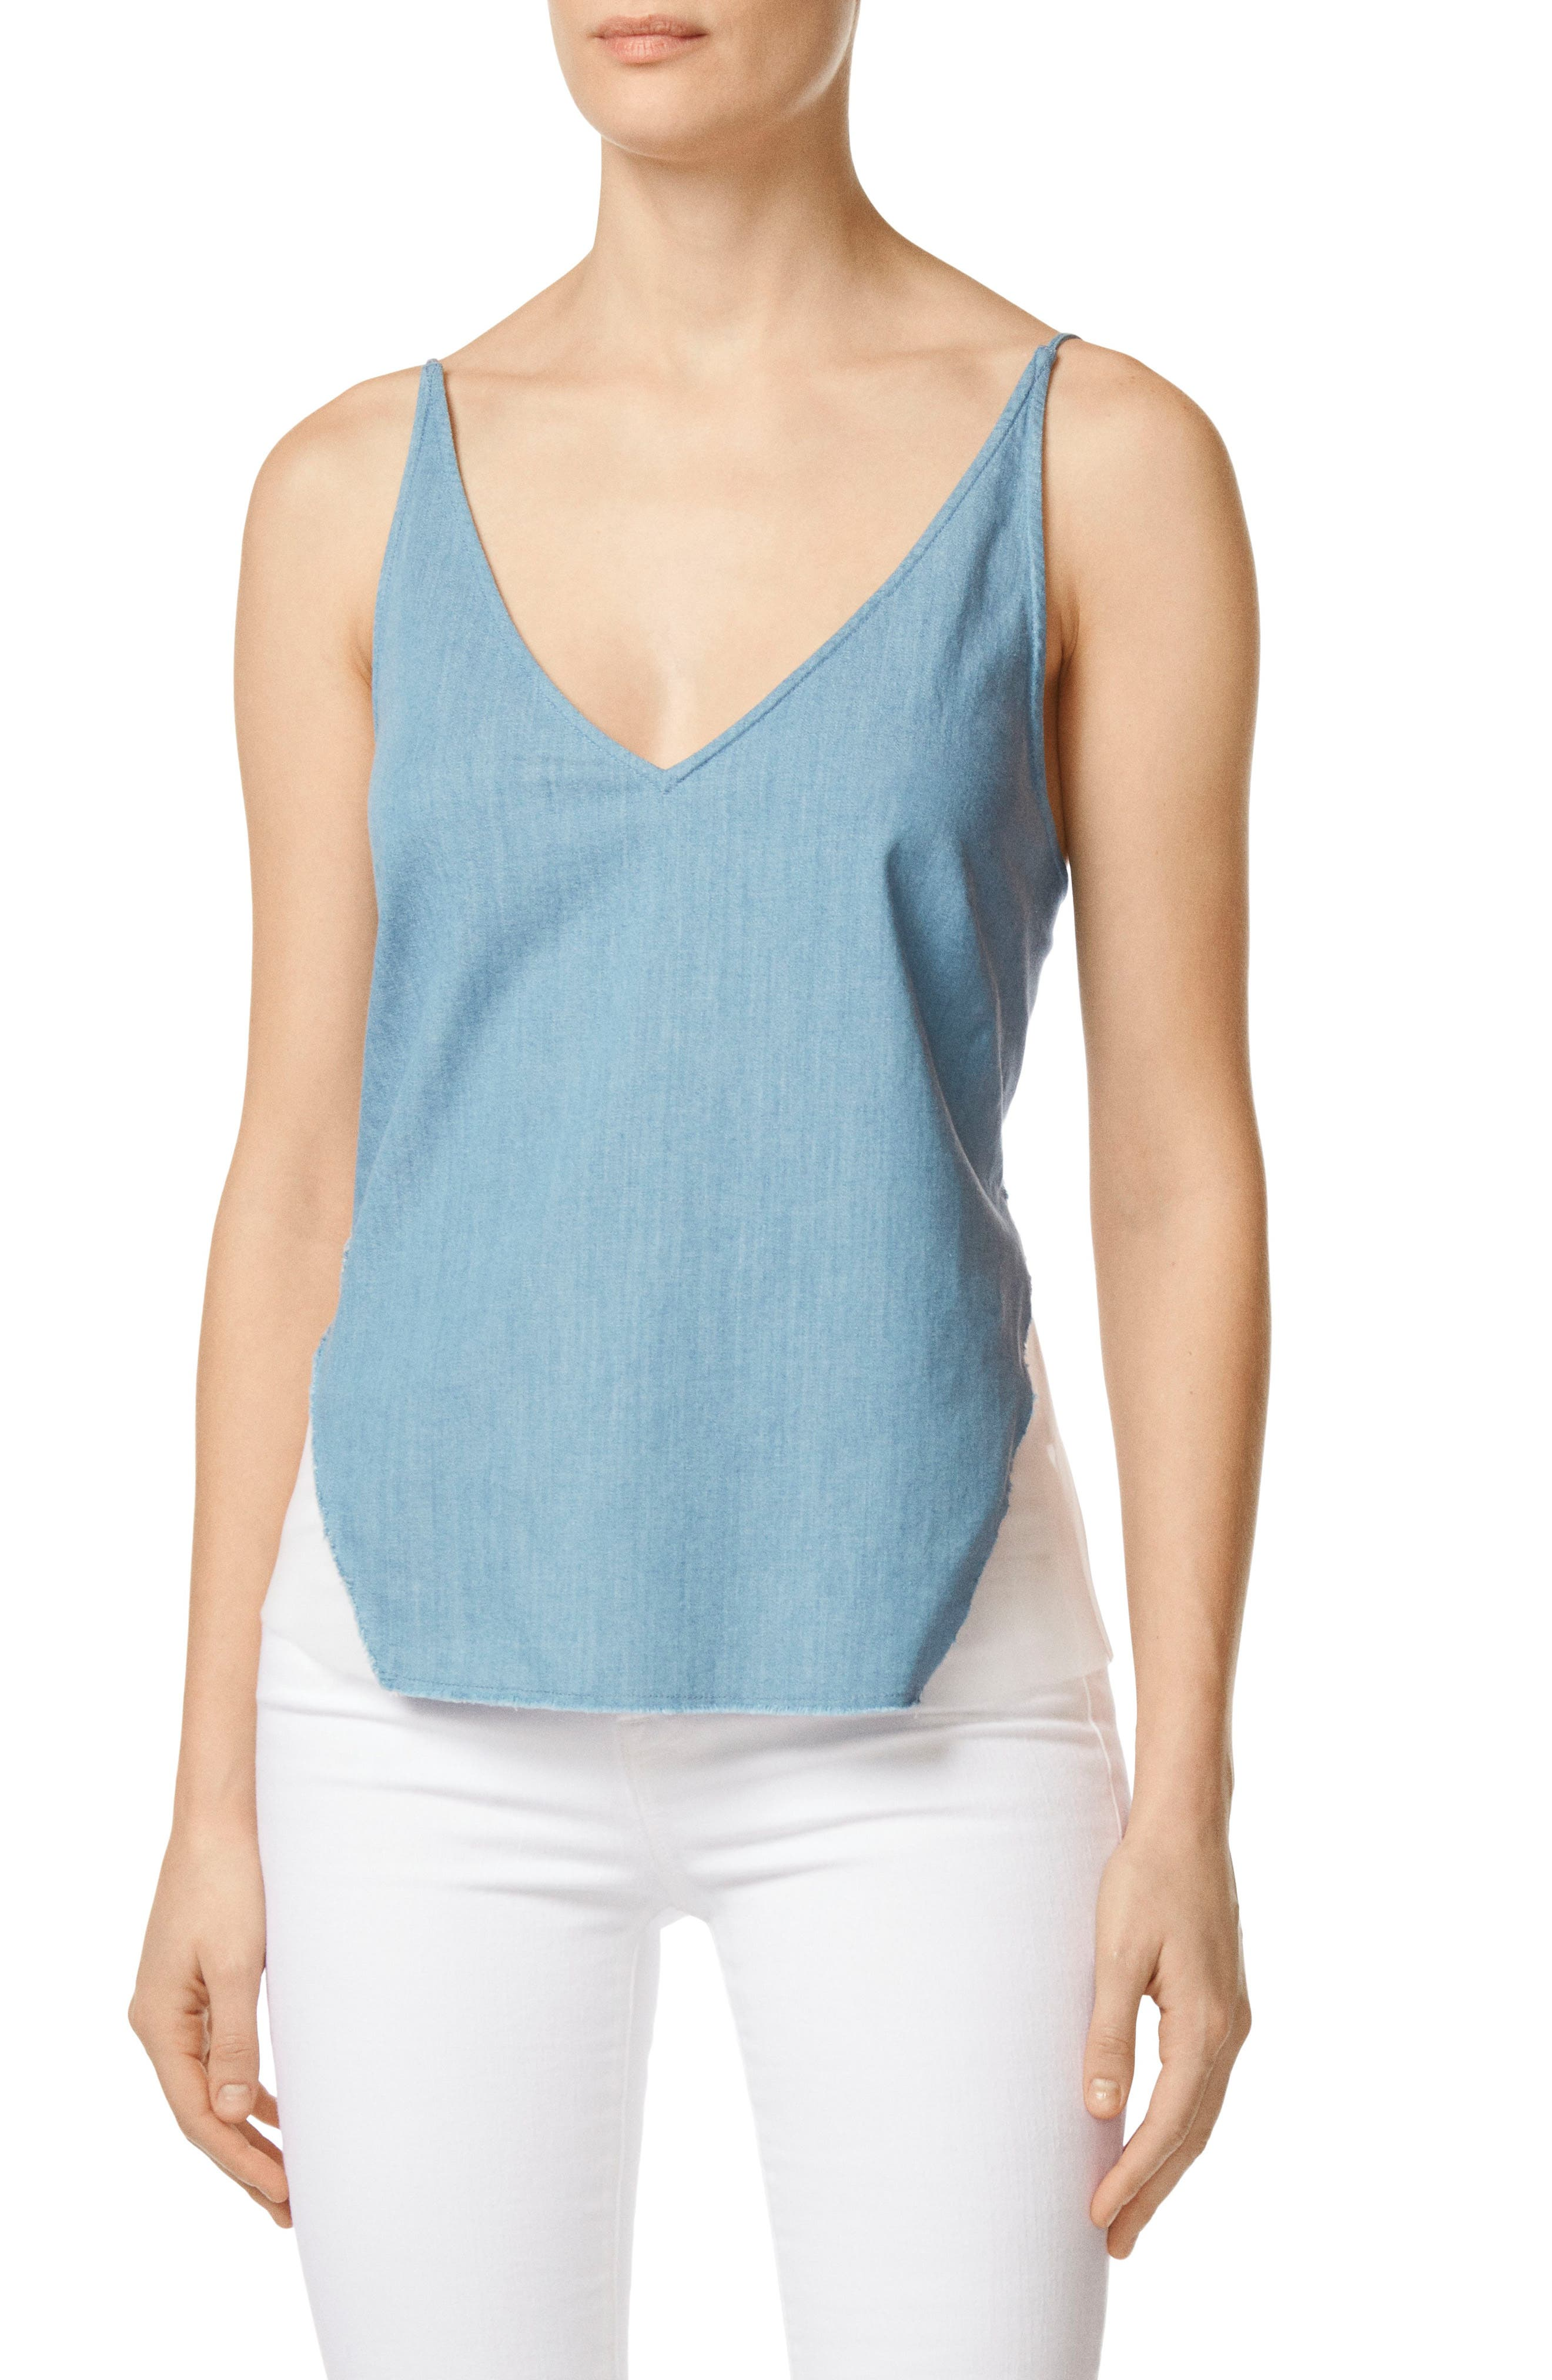 J Brand Lucy Illusion Back Camisole